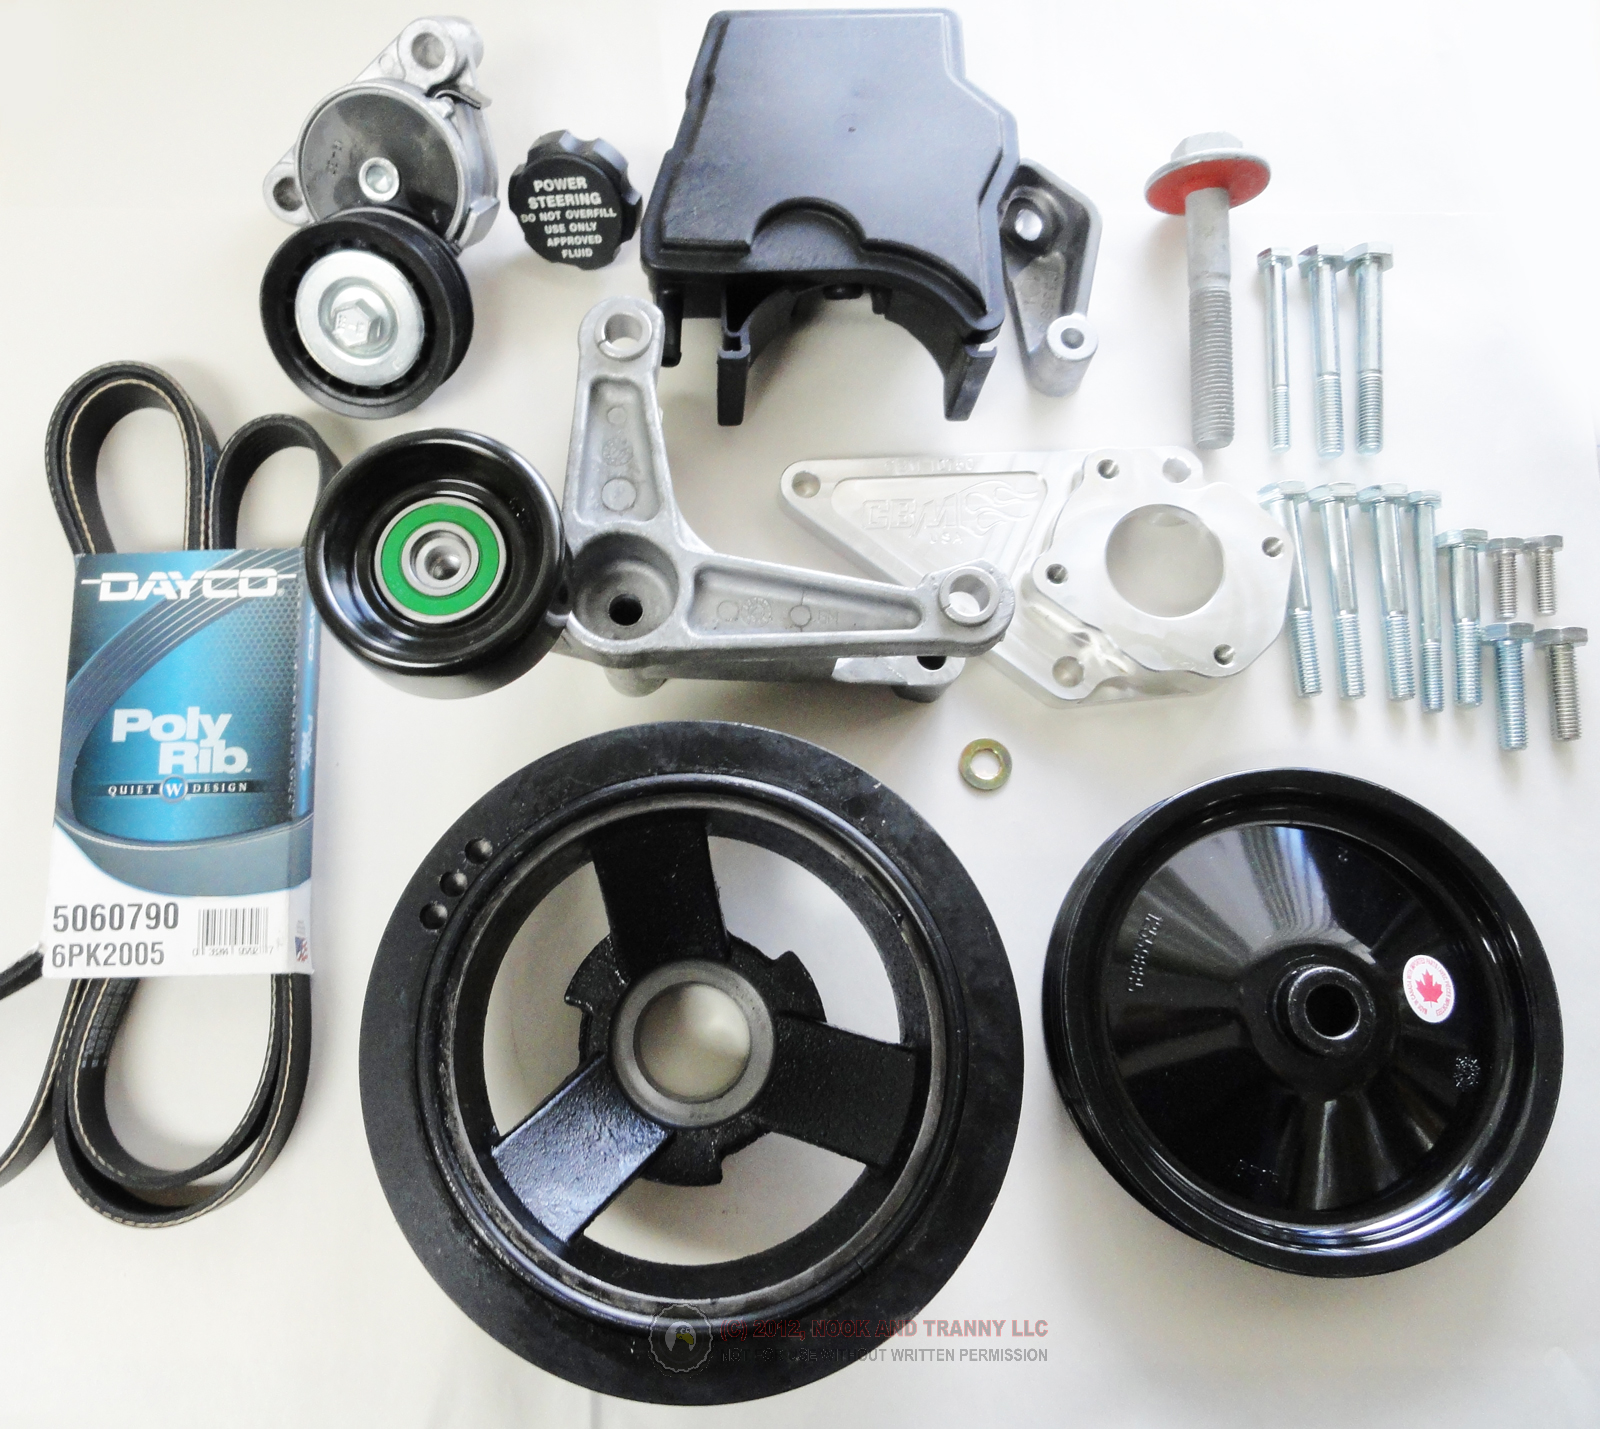 Accessories For Your Chevy Lt1: Nook And Tranny: Front Accessory Drive Kit, LS1 Camaro